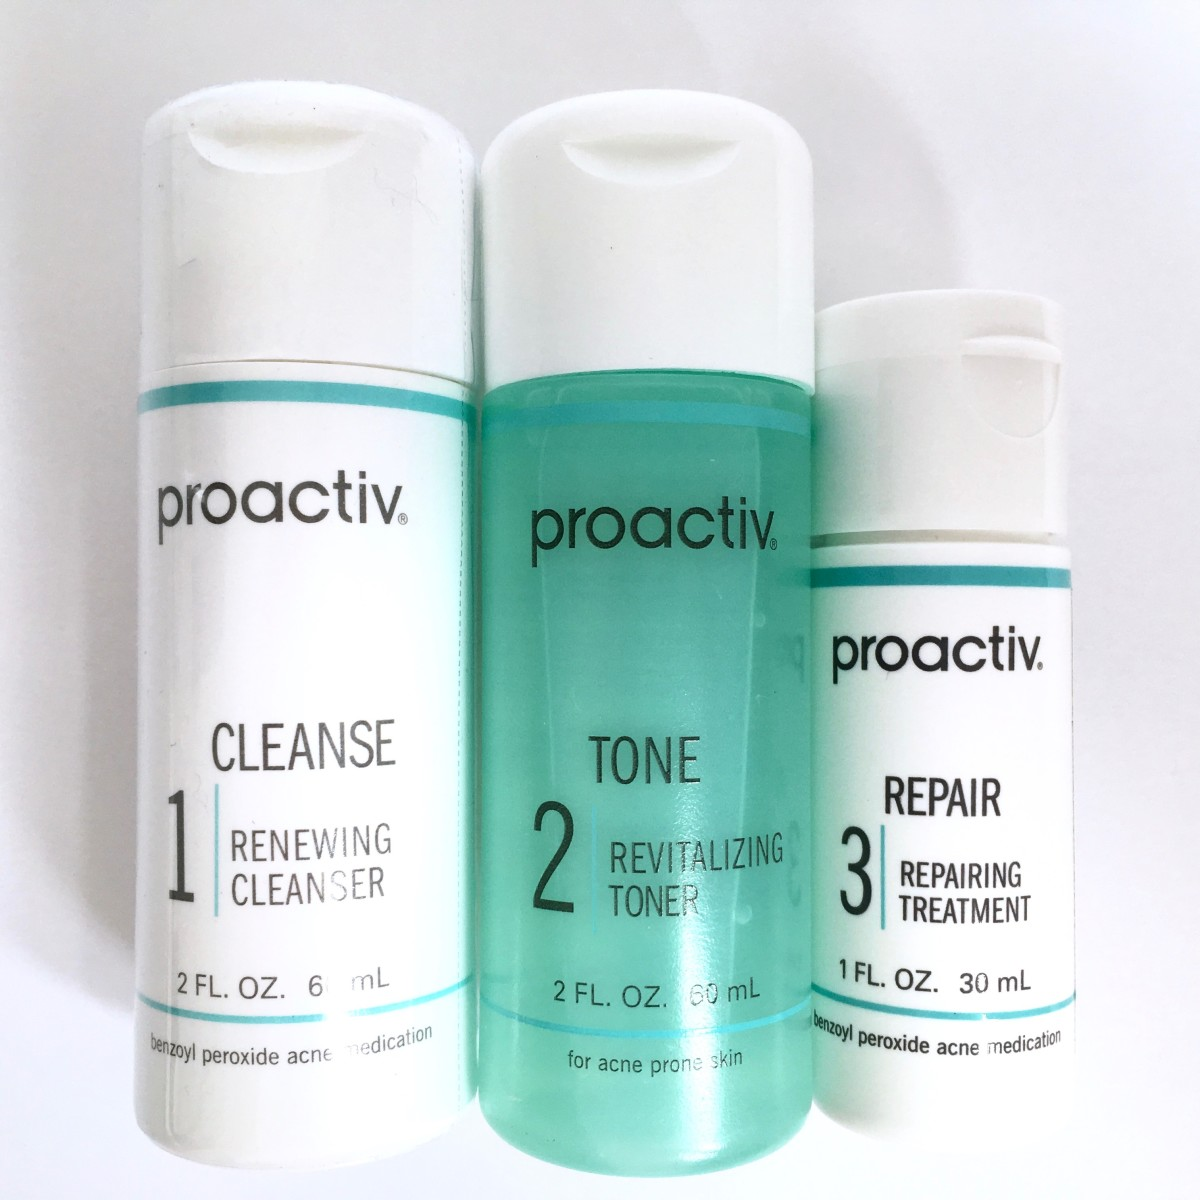 The Proactiv Solution 3-Step System includes a cleanser, toner and repairing lotion.